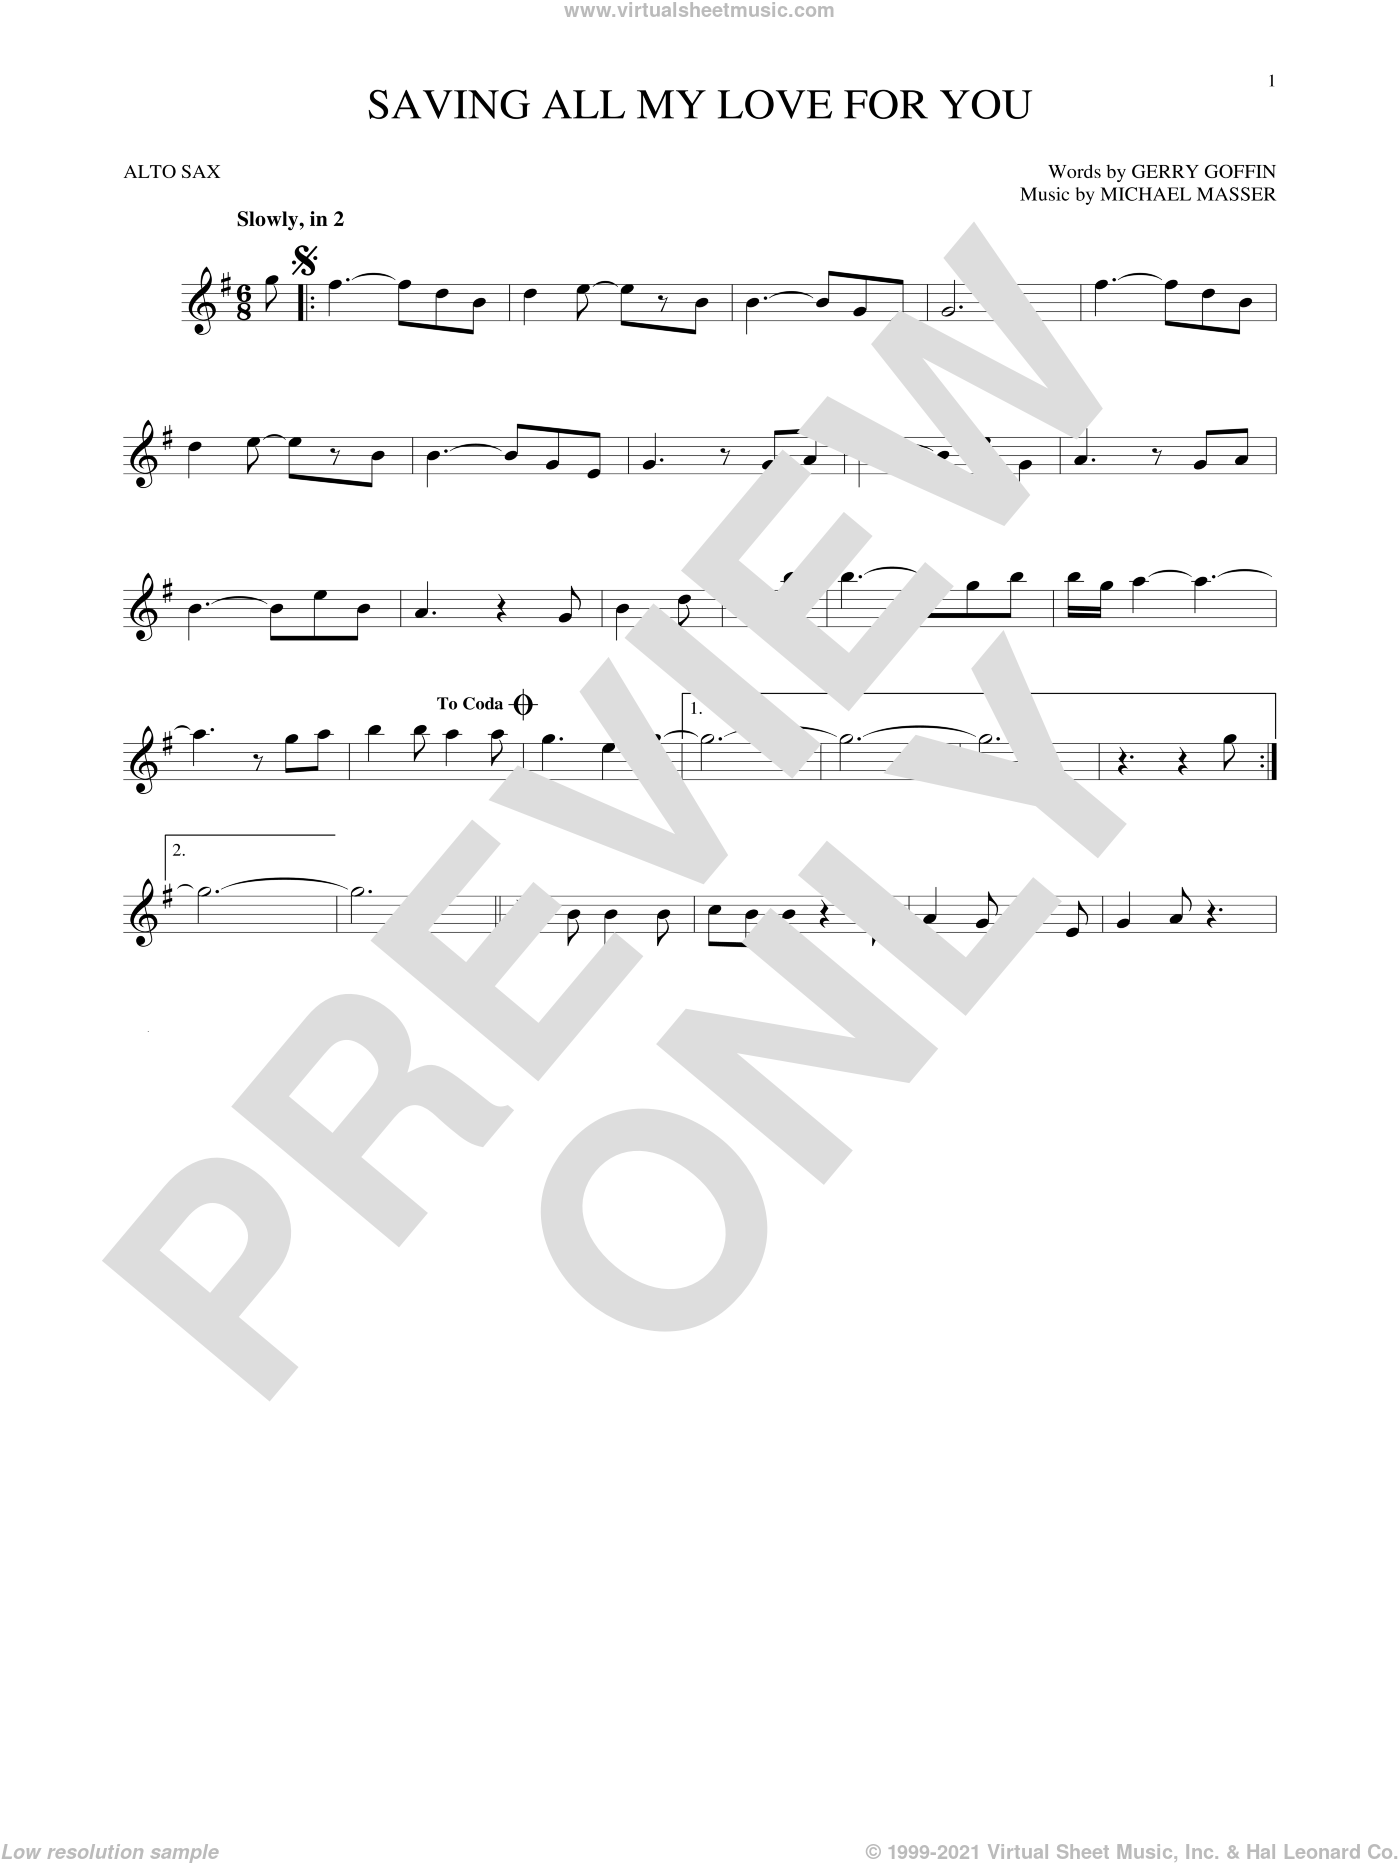 Saving All My Love For You sheet music for alto saxophone solo by Whitney Houston, Gerry Goffin and Michael Masser, intermediate skill level